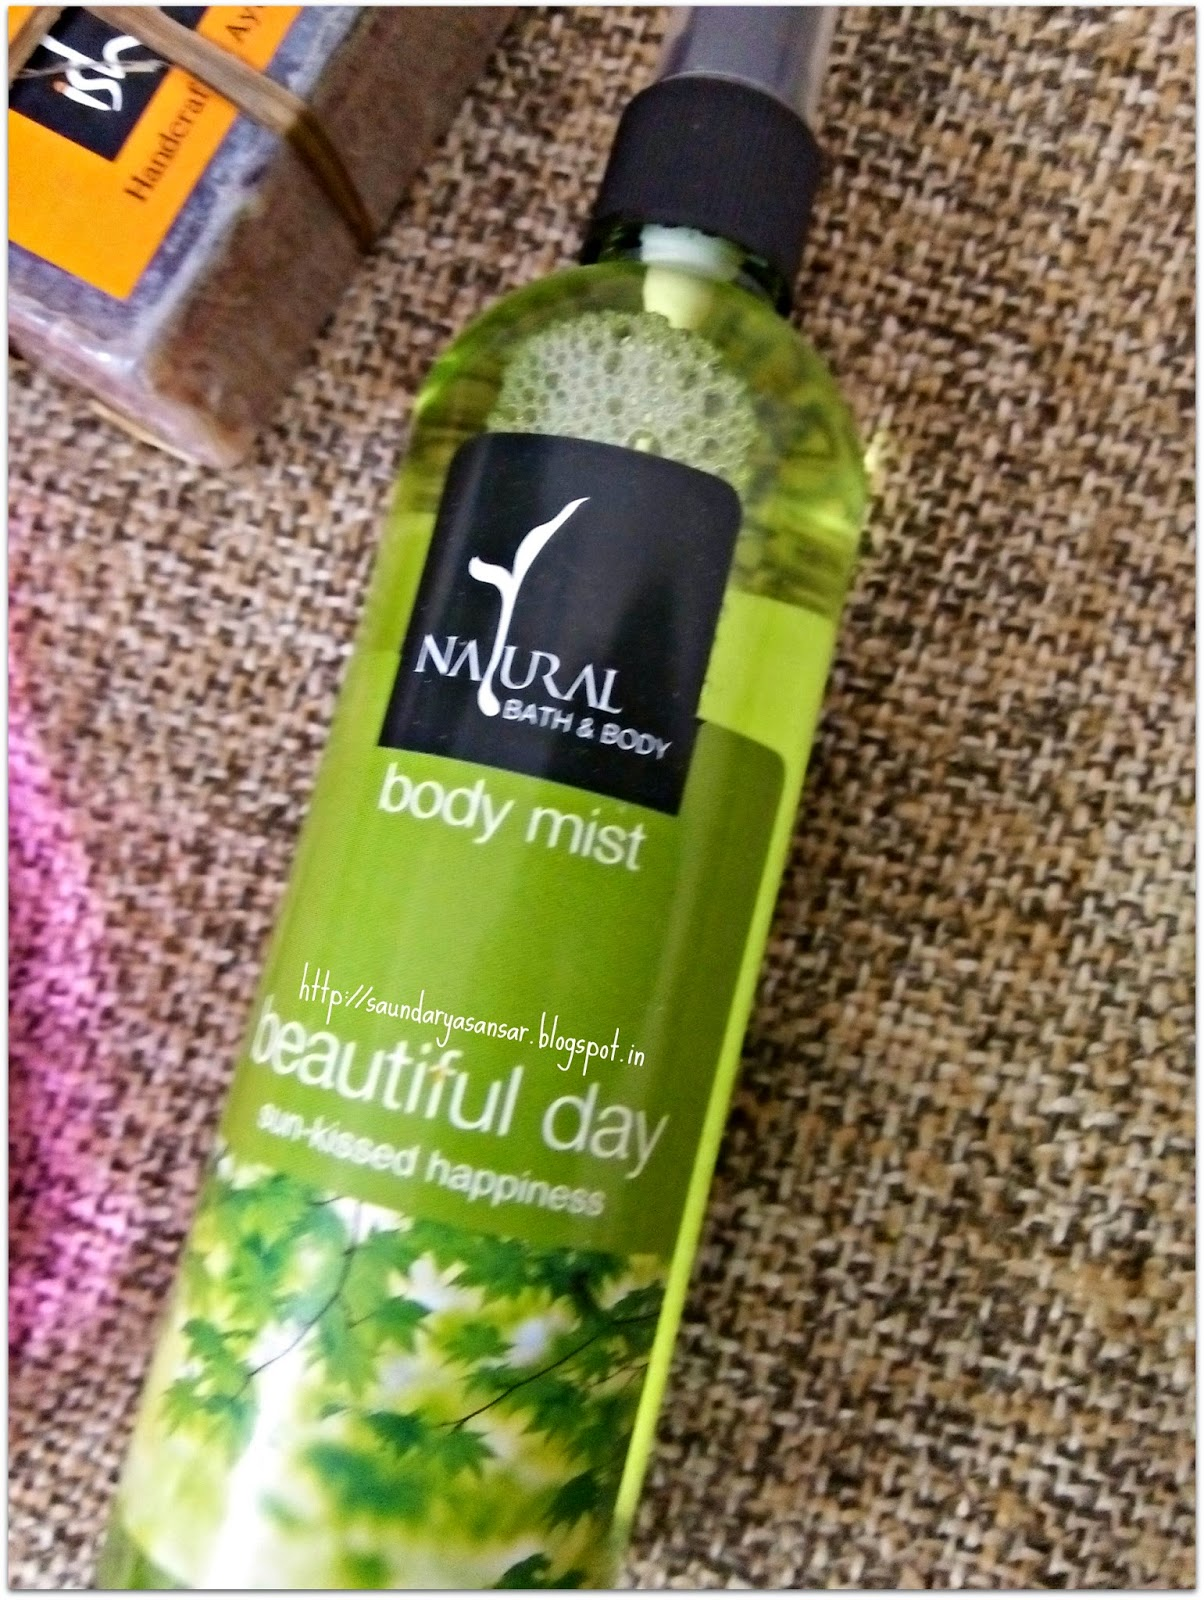 Natural Bath & Body- Beautiful Day Body Mist